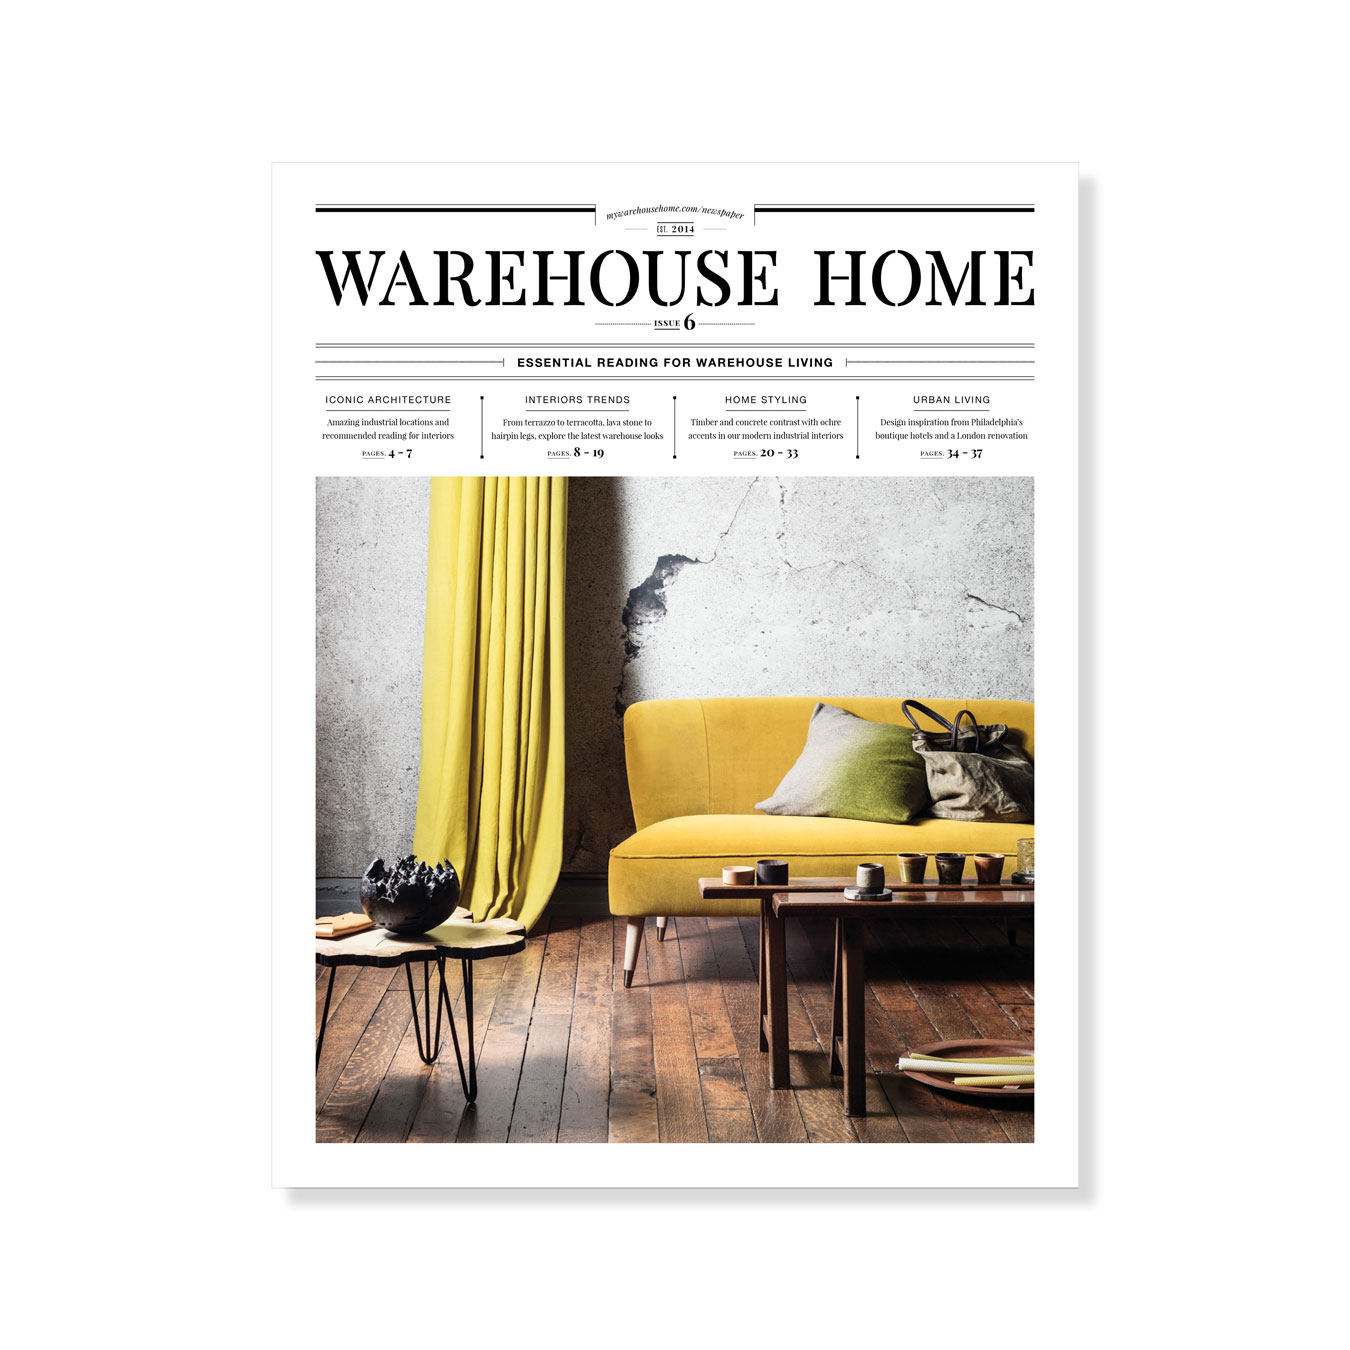 WAREHOUSE HOME Issue 6 - June 2017